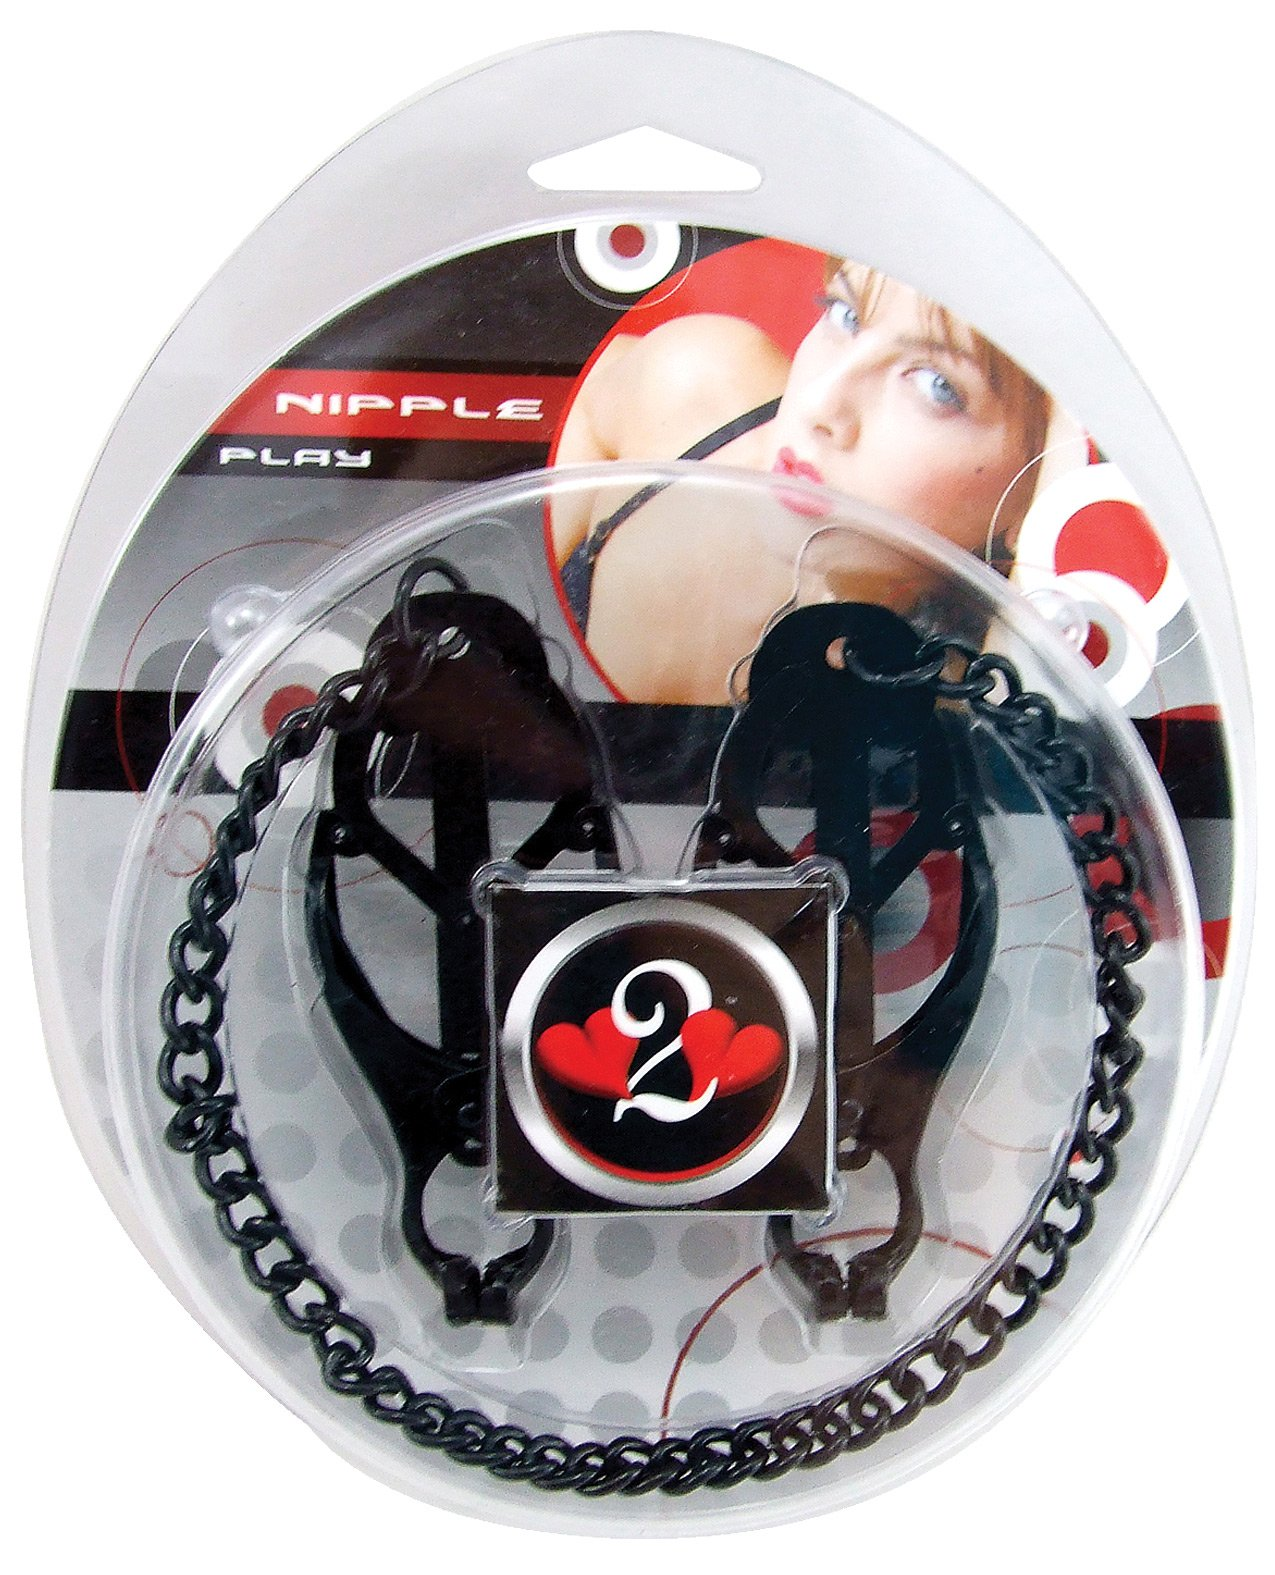 Heart 2 Heart Nipple Clamps Jaws w/Chain - Black by Sex Toys Online Store (Image #1)